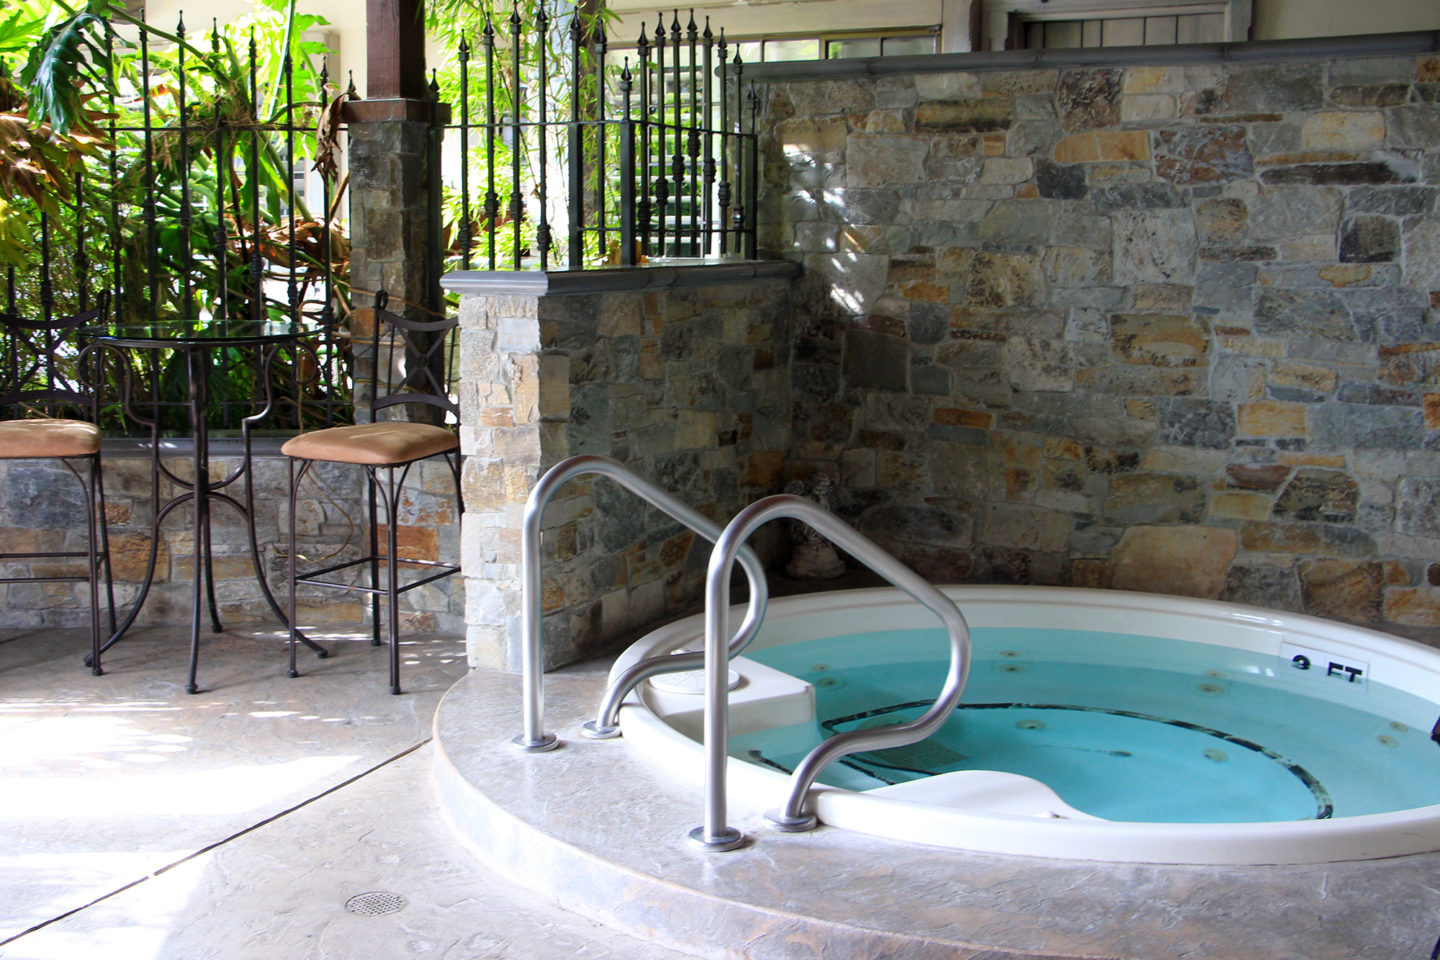 Outdoor hot tub at the Coachman's Inn